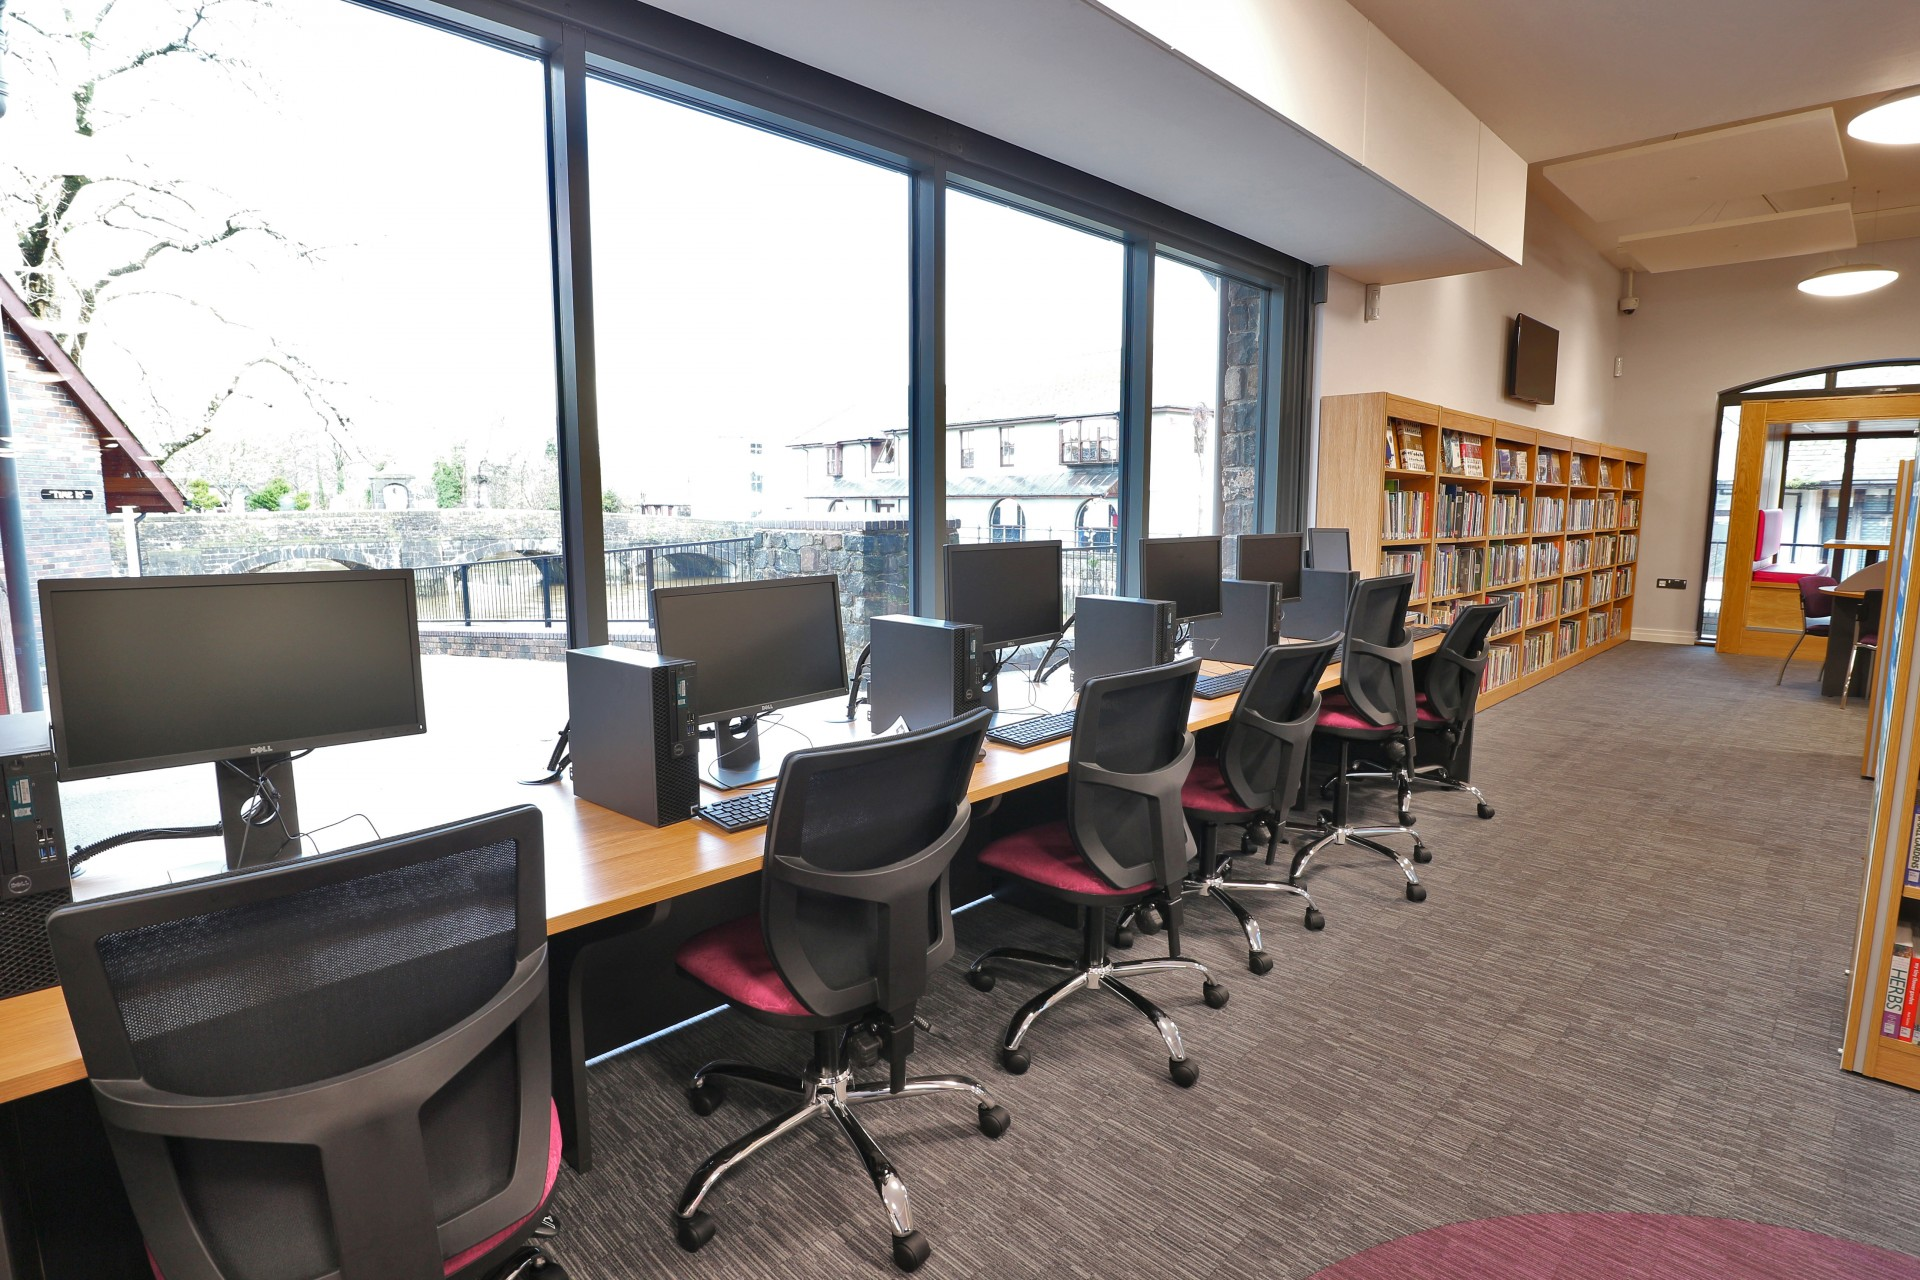 an image for Haverfordwest Library